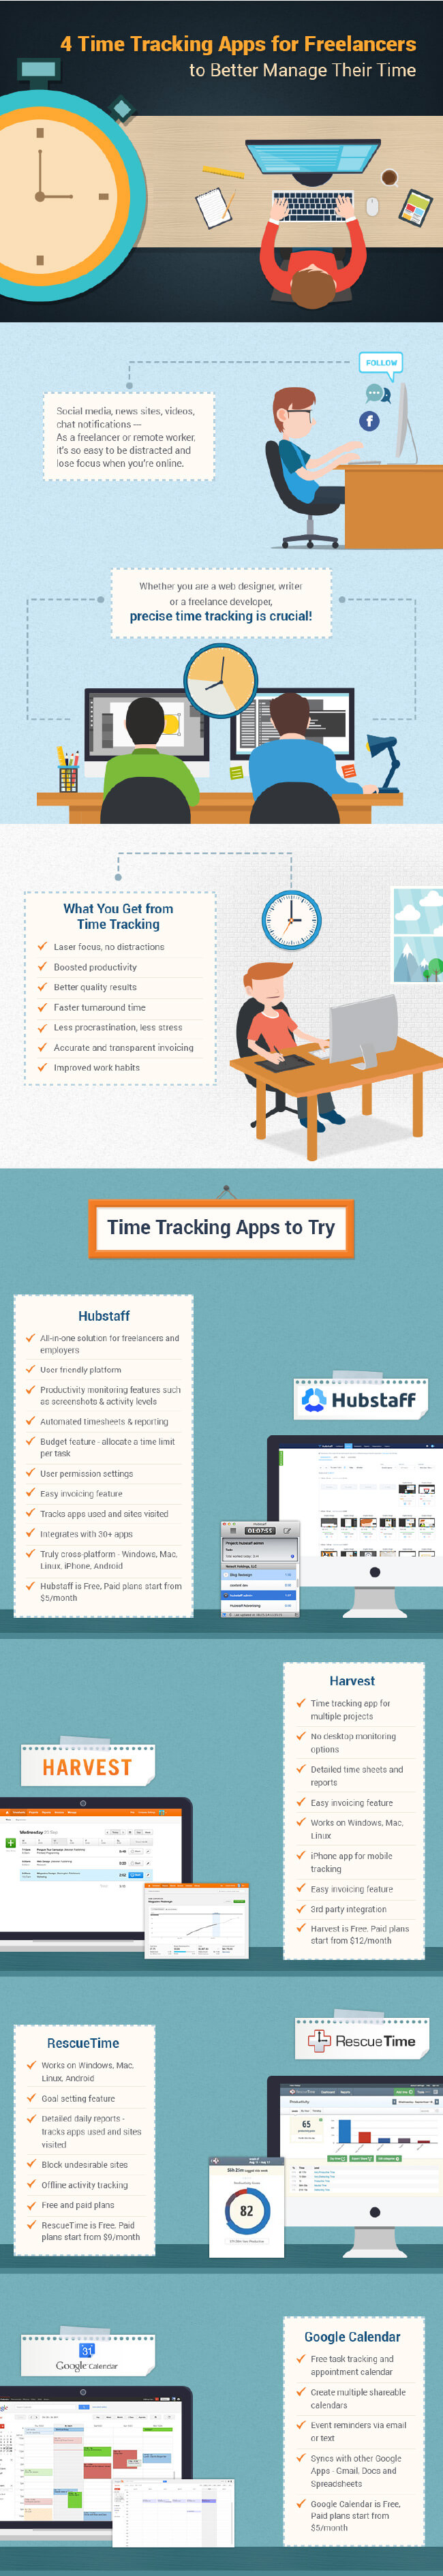 Image titled 4 time tracking apps for freelancers to better manage their time